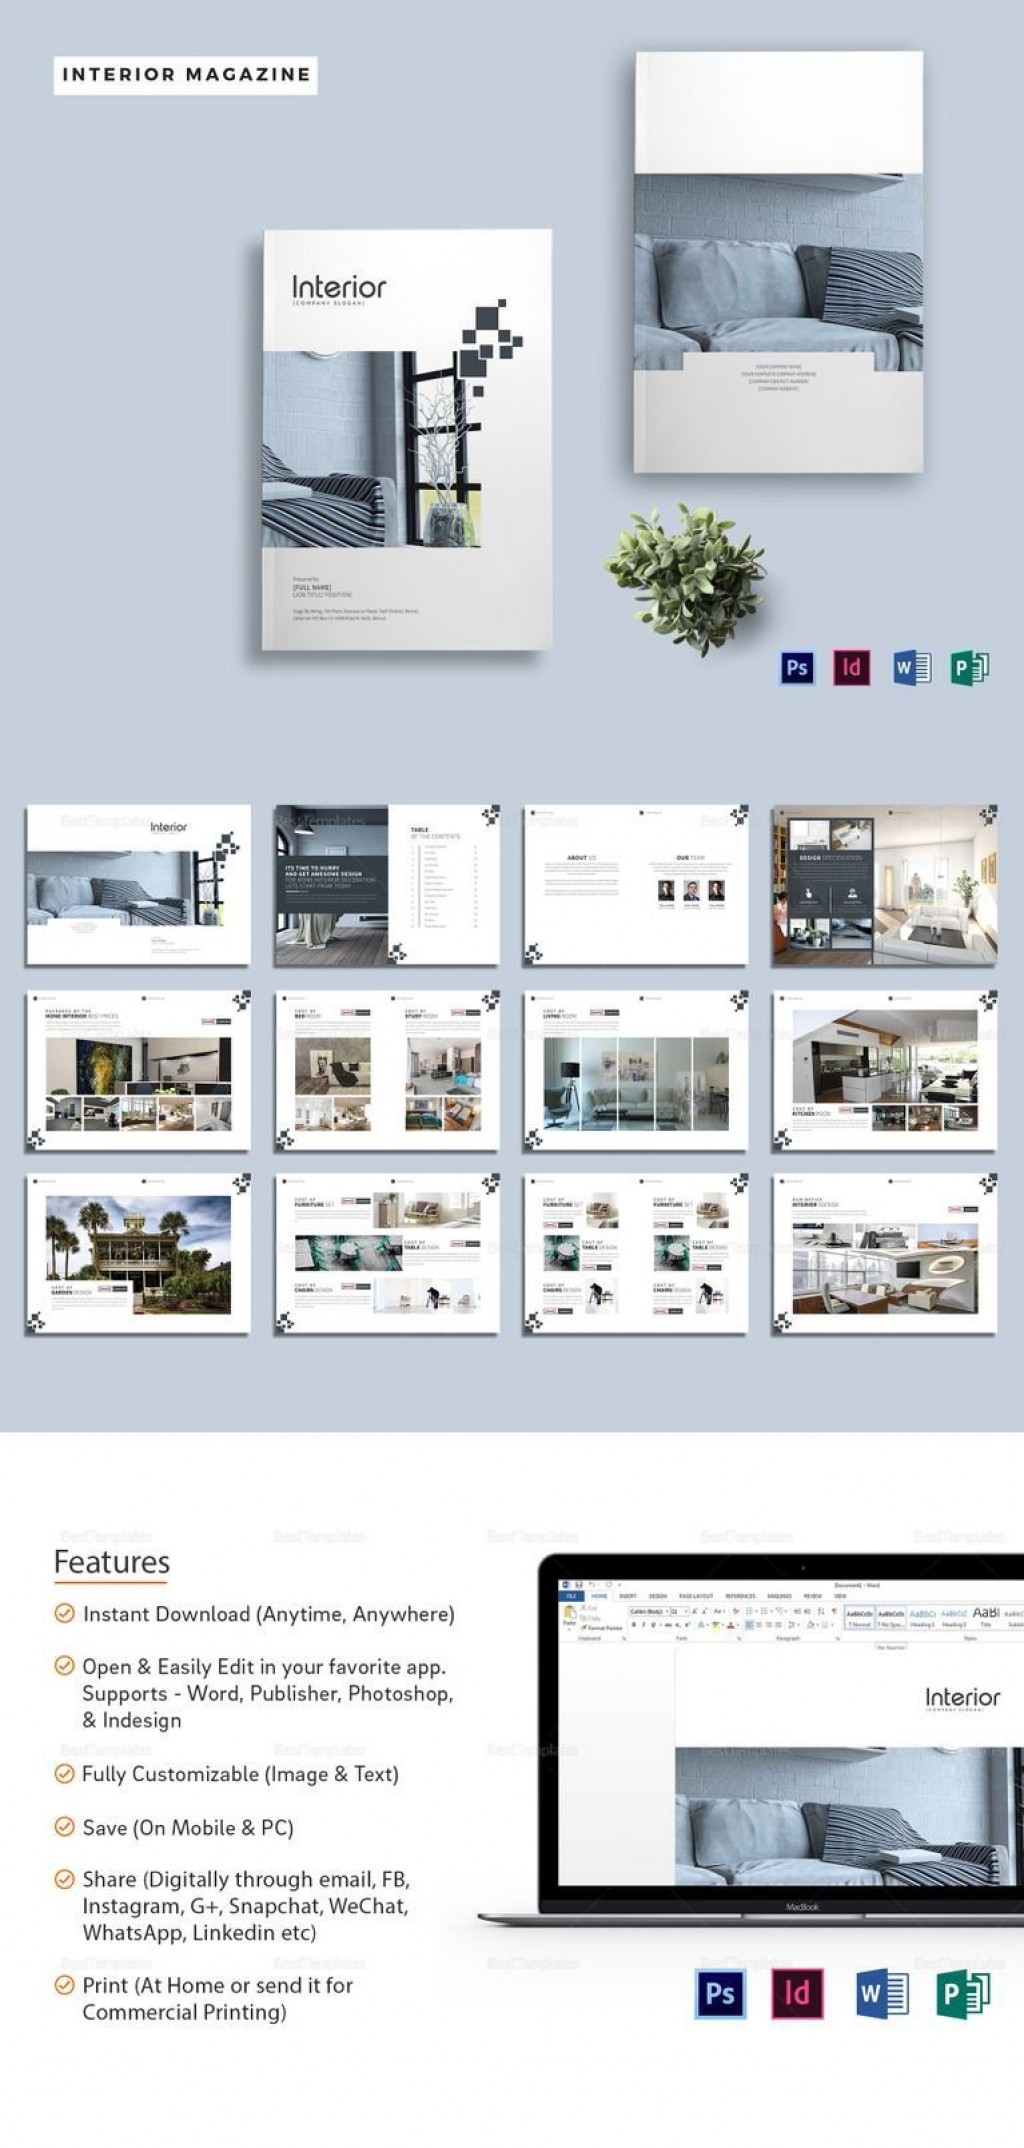 003 Best Magazine Template For Microsoft Word Picture  Layout Design DownloadLarge